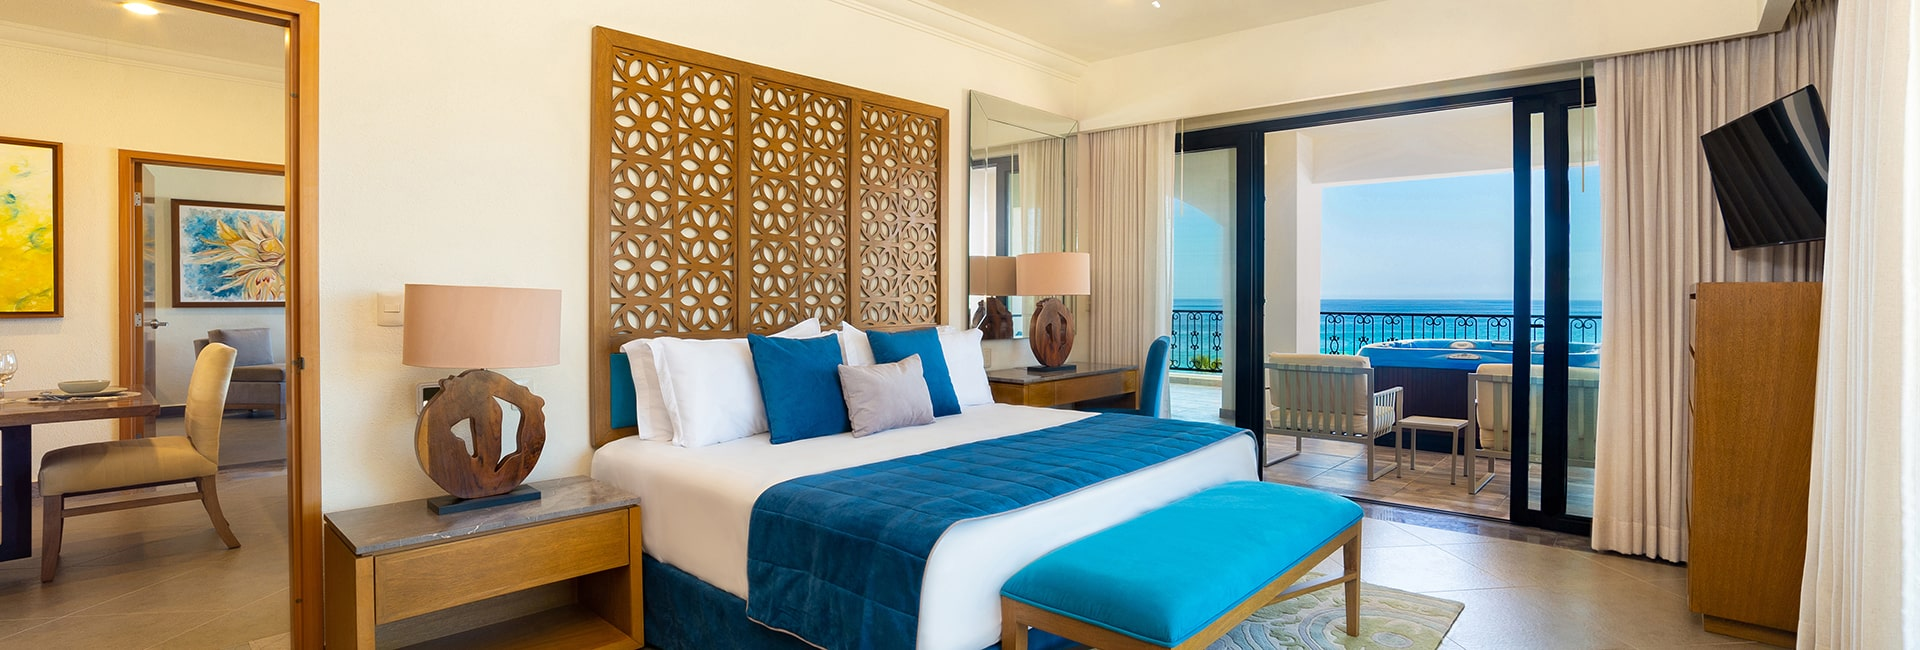 Resorts with luxury suites in los cabos